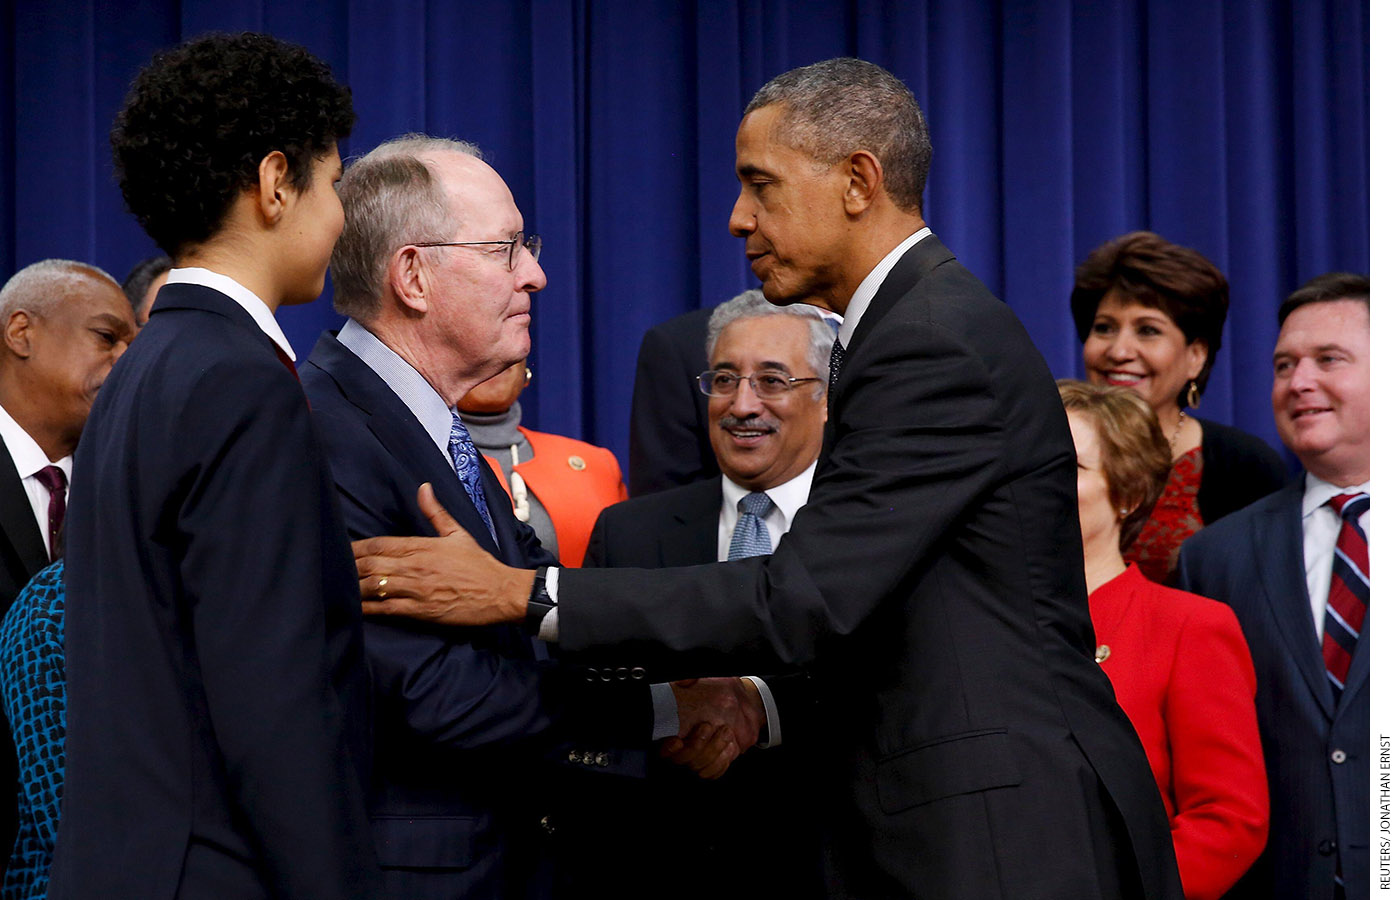 President Barack Obama shakes hands with Alexander after signing the Every Student Succeeds Act into law on December 10, 2015.